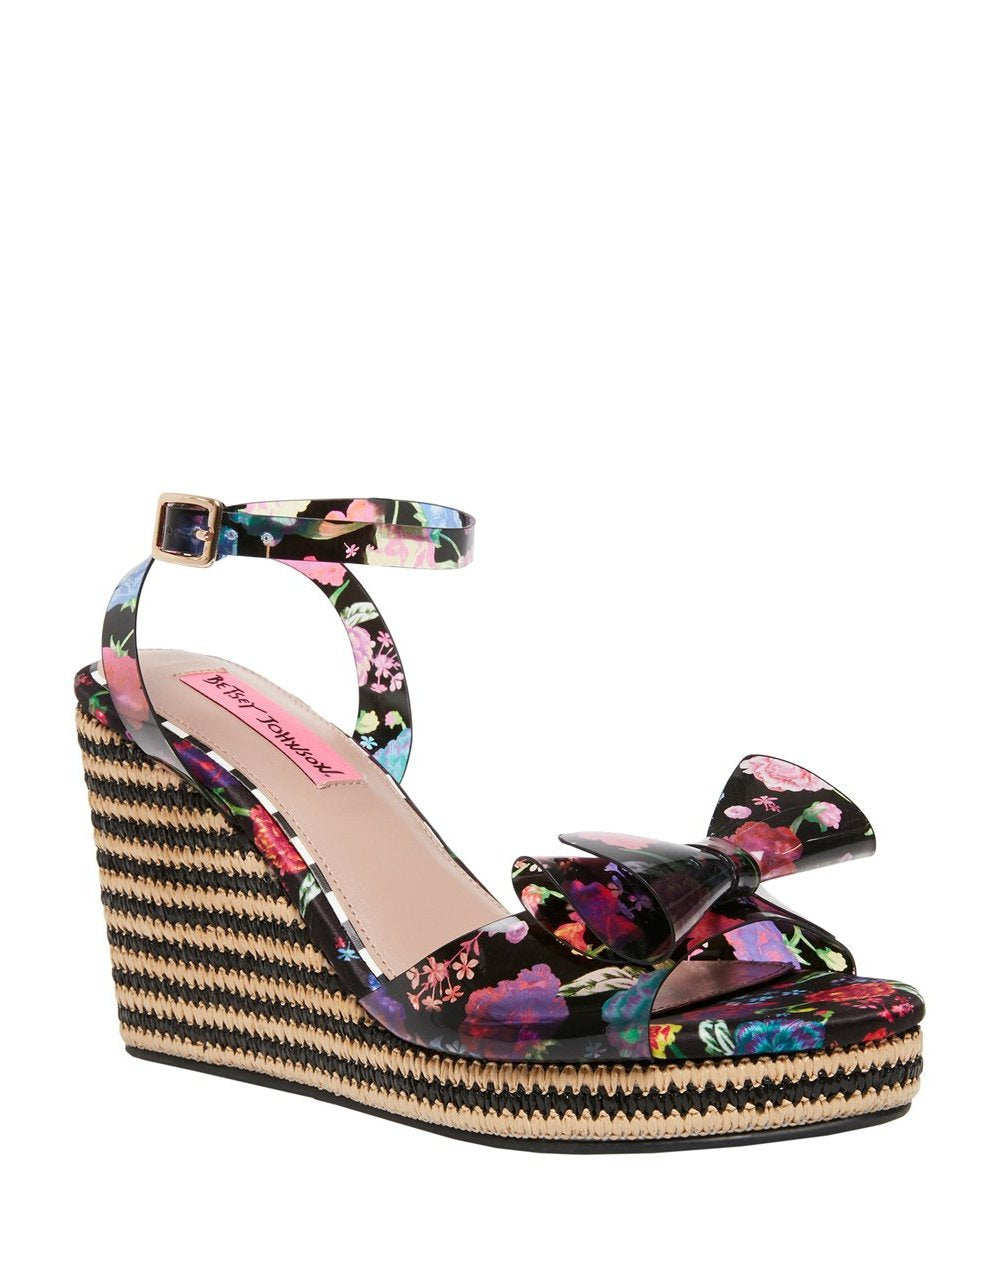 ELEKTRA BLACK MULTI - SHOES - Betsey Johnson